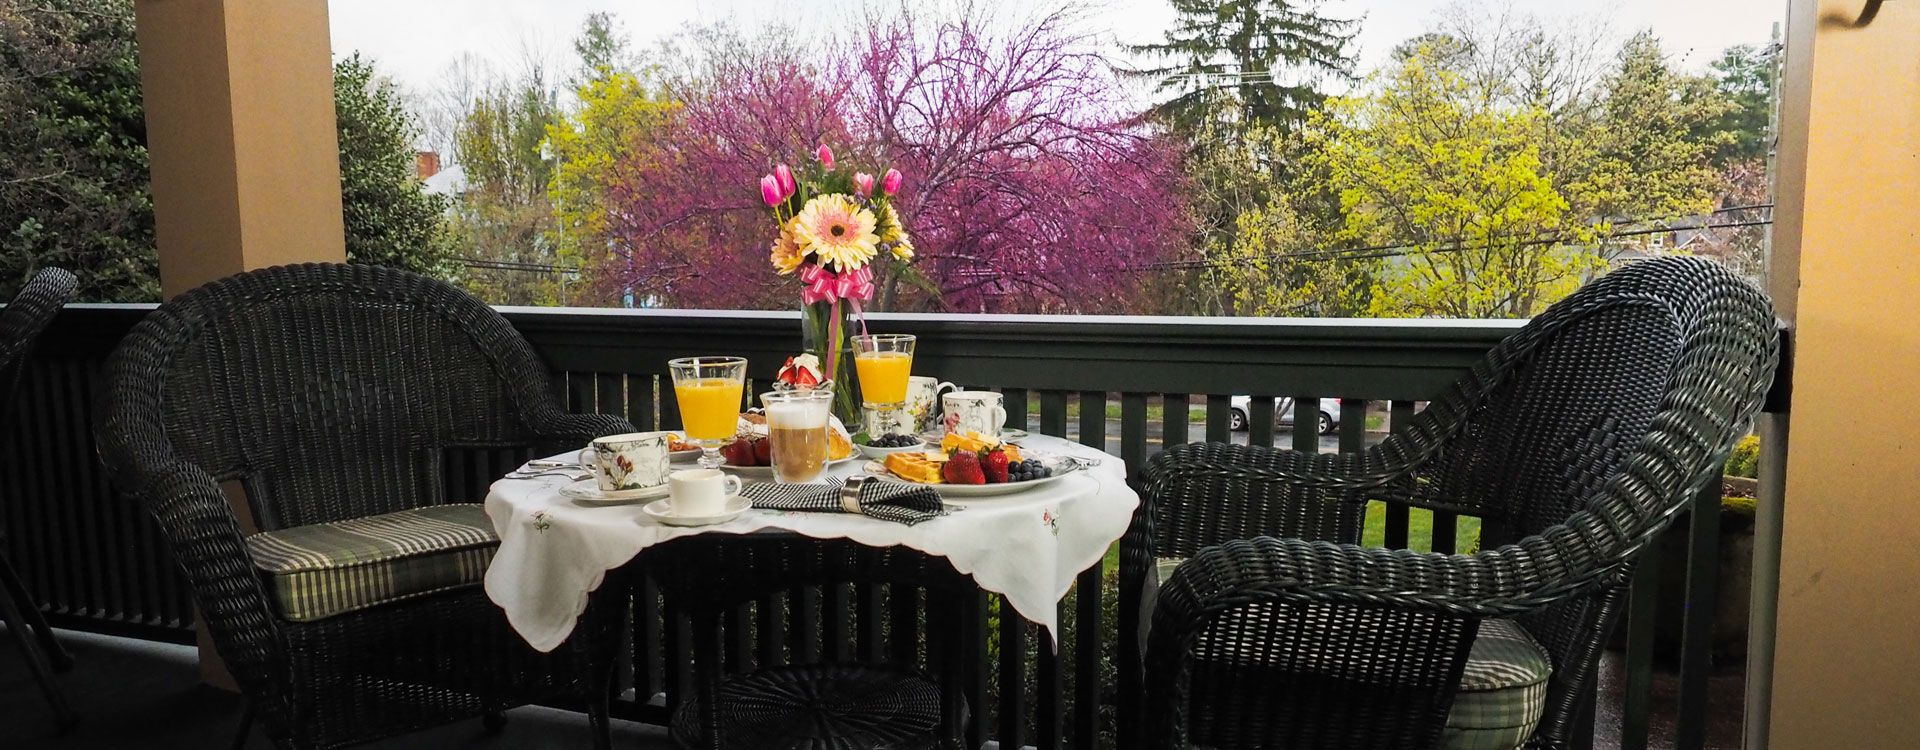 Breakfast served on the porch. A table set for two with a white tablecloth. Waffles with fruits, two glasses of orange juice and a coffee.